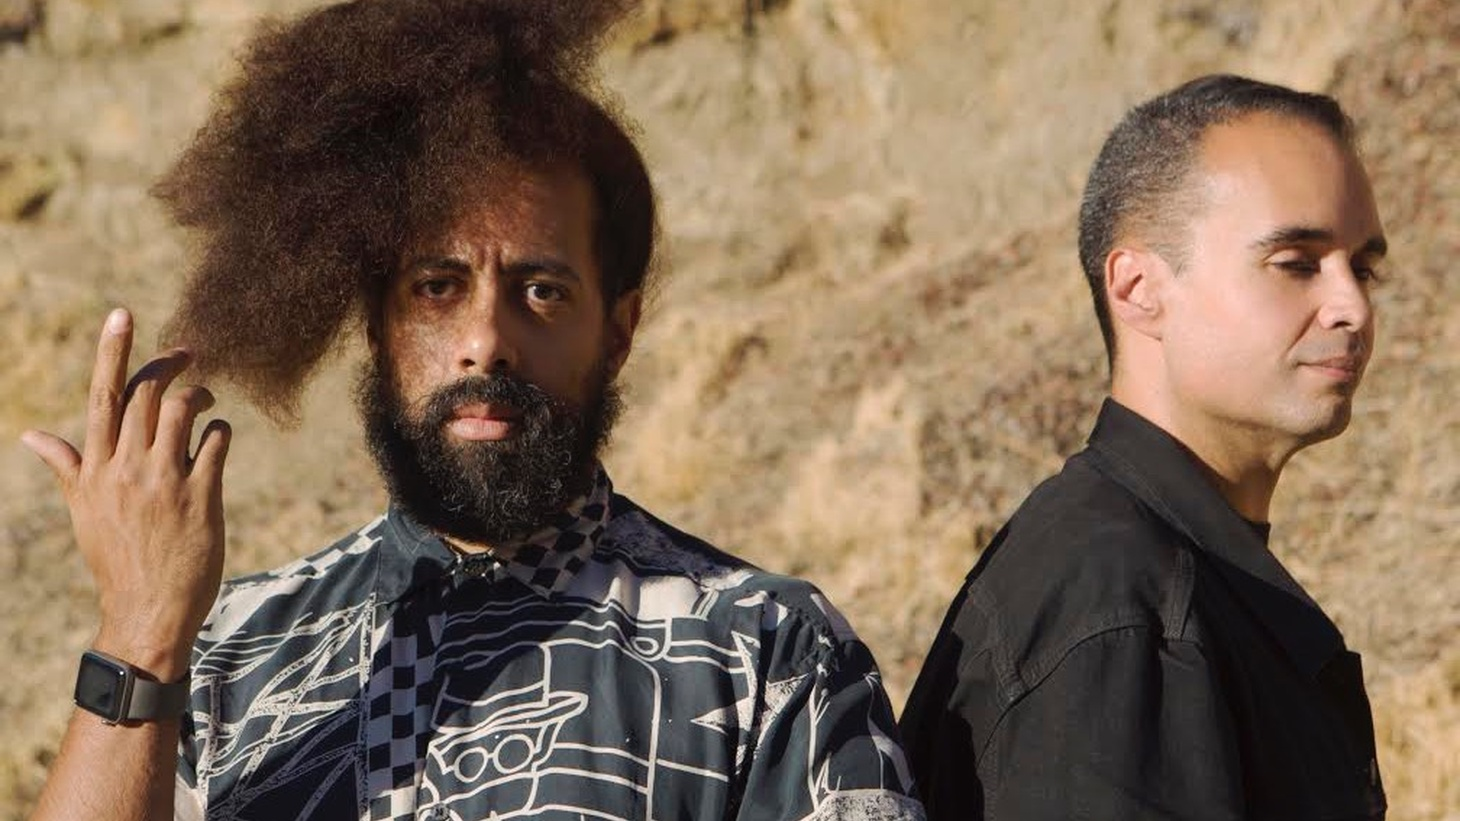 Comedian and musician Reggie Watts teams up with extraordinary producer John Tejada as Wajatta.